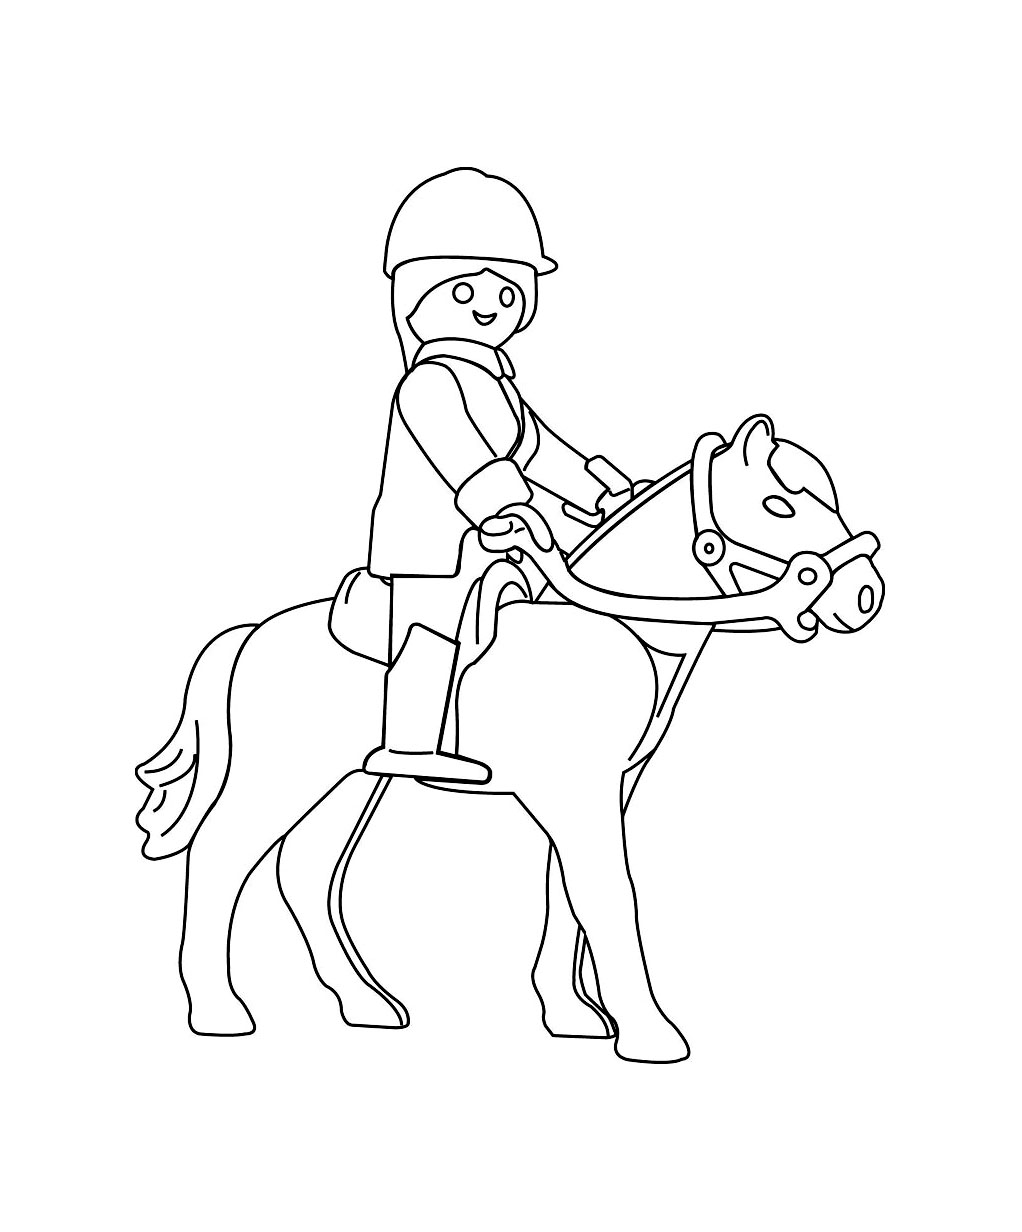 Playmobil sur un cheval coloriage playmobil coloriages pour enfants - Dessin a colorier playmobil moto ...